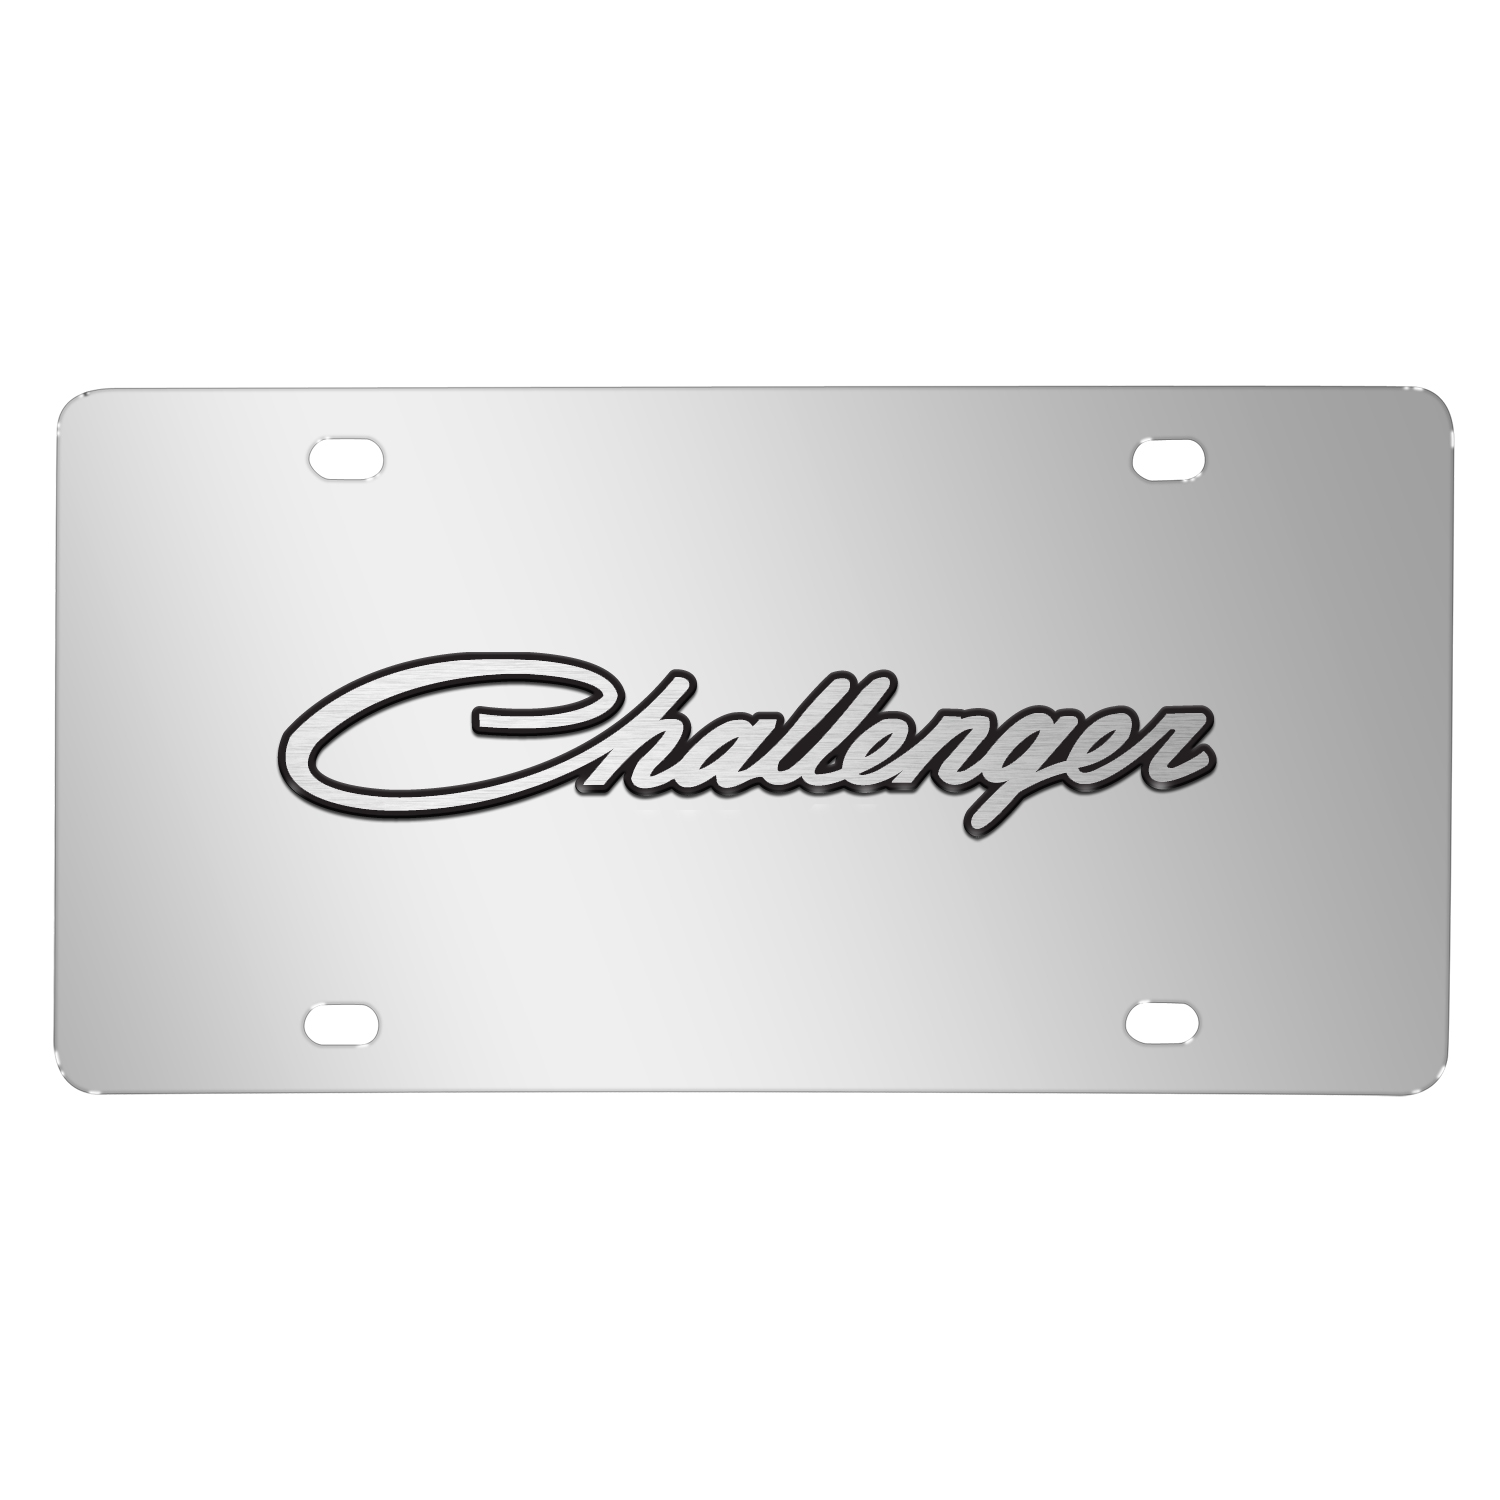 Dodge Challenger Classic 3D Logo on Chrome Stainless Steel License Plate